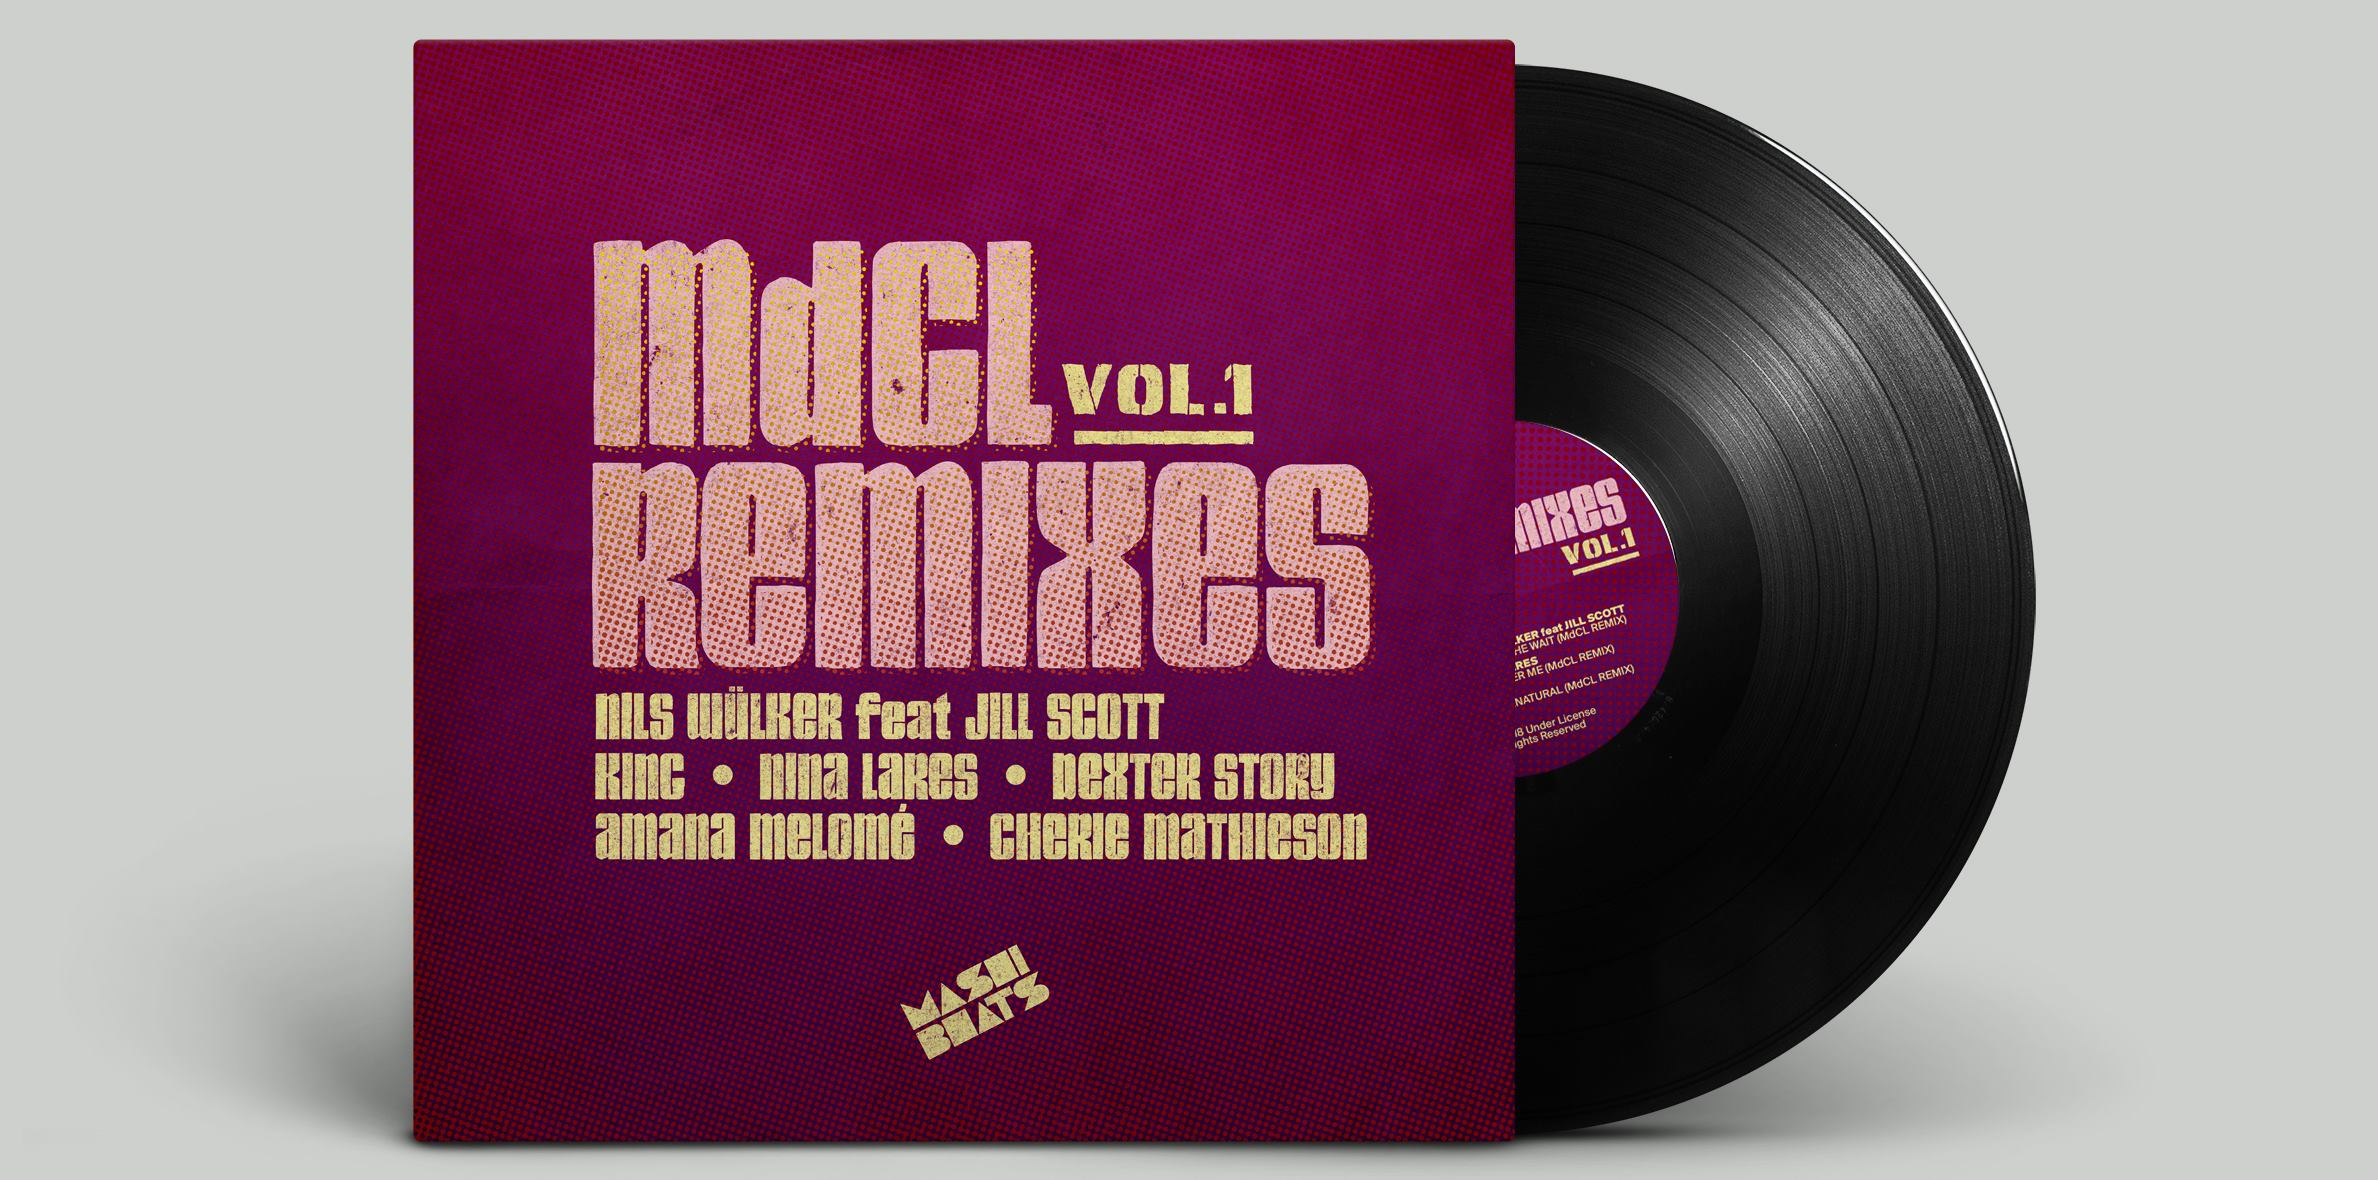 MdCL Remixes Vol.1 Promo Mix by Mark de Clive-Lowe